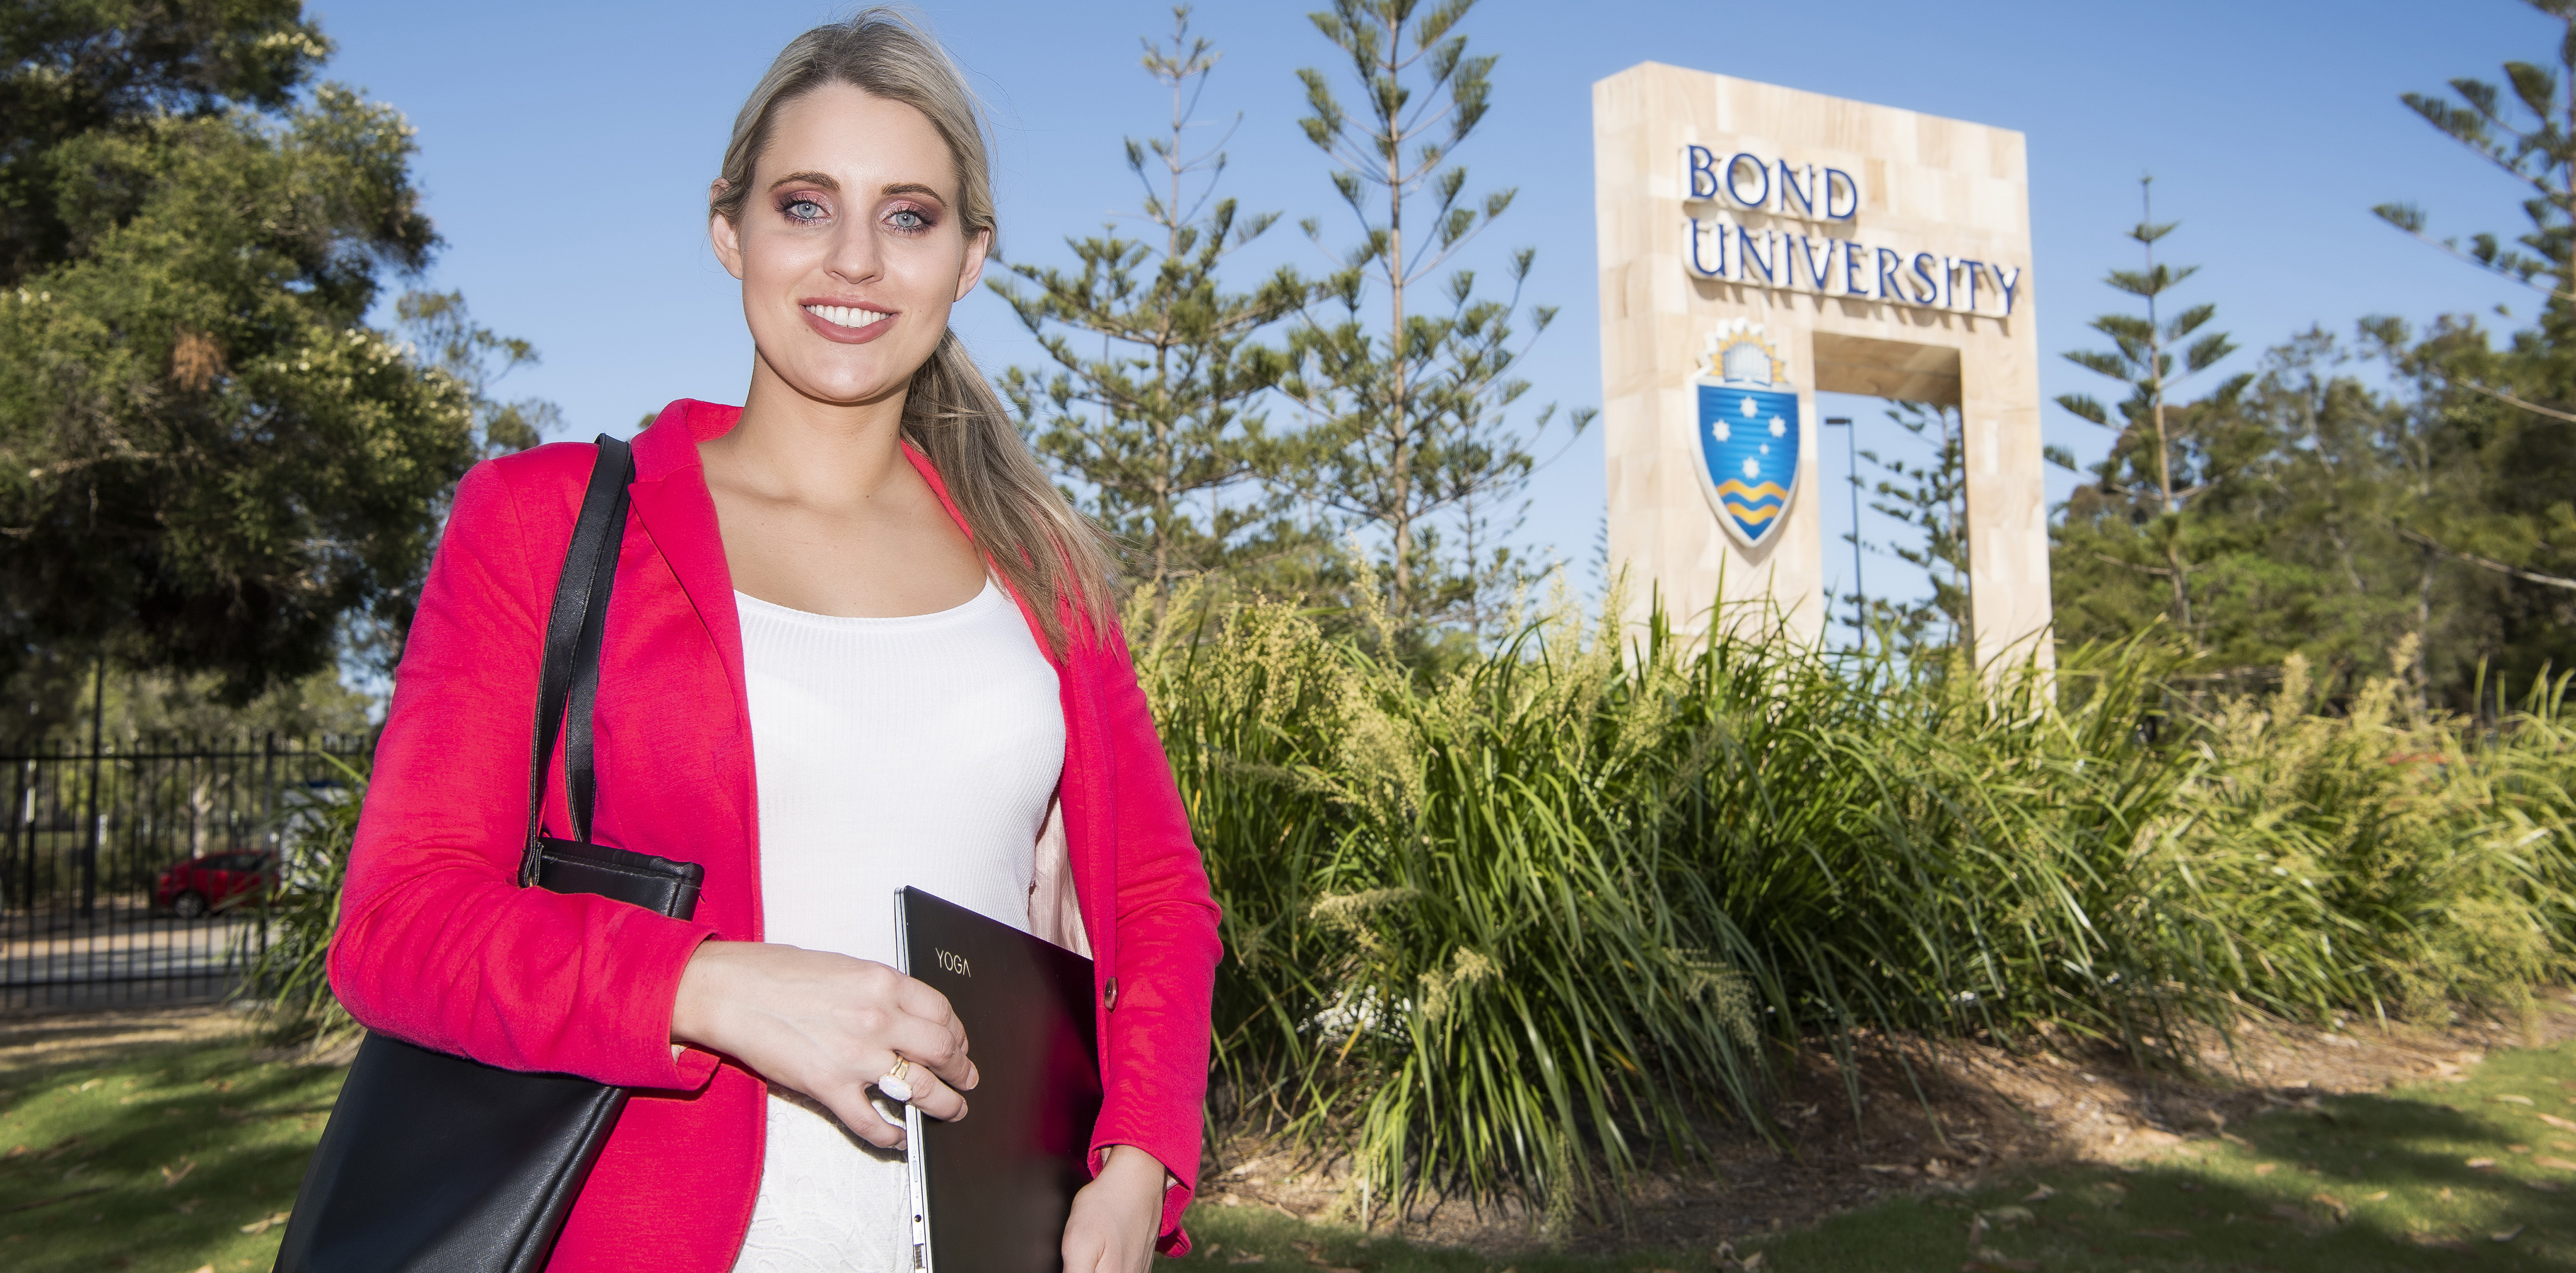 Radio star Bethany signs off and tunes in to university | Bond University